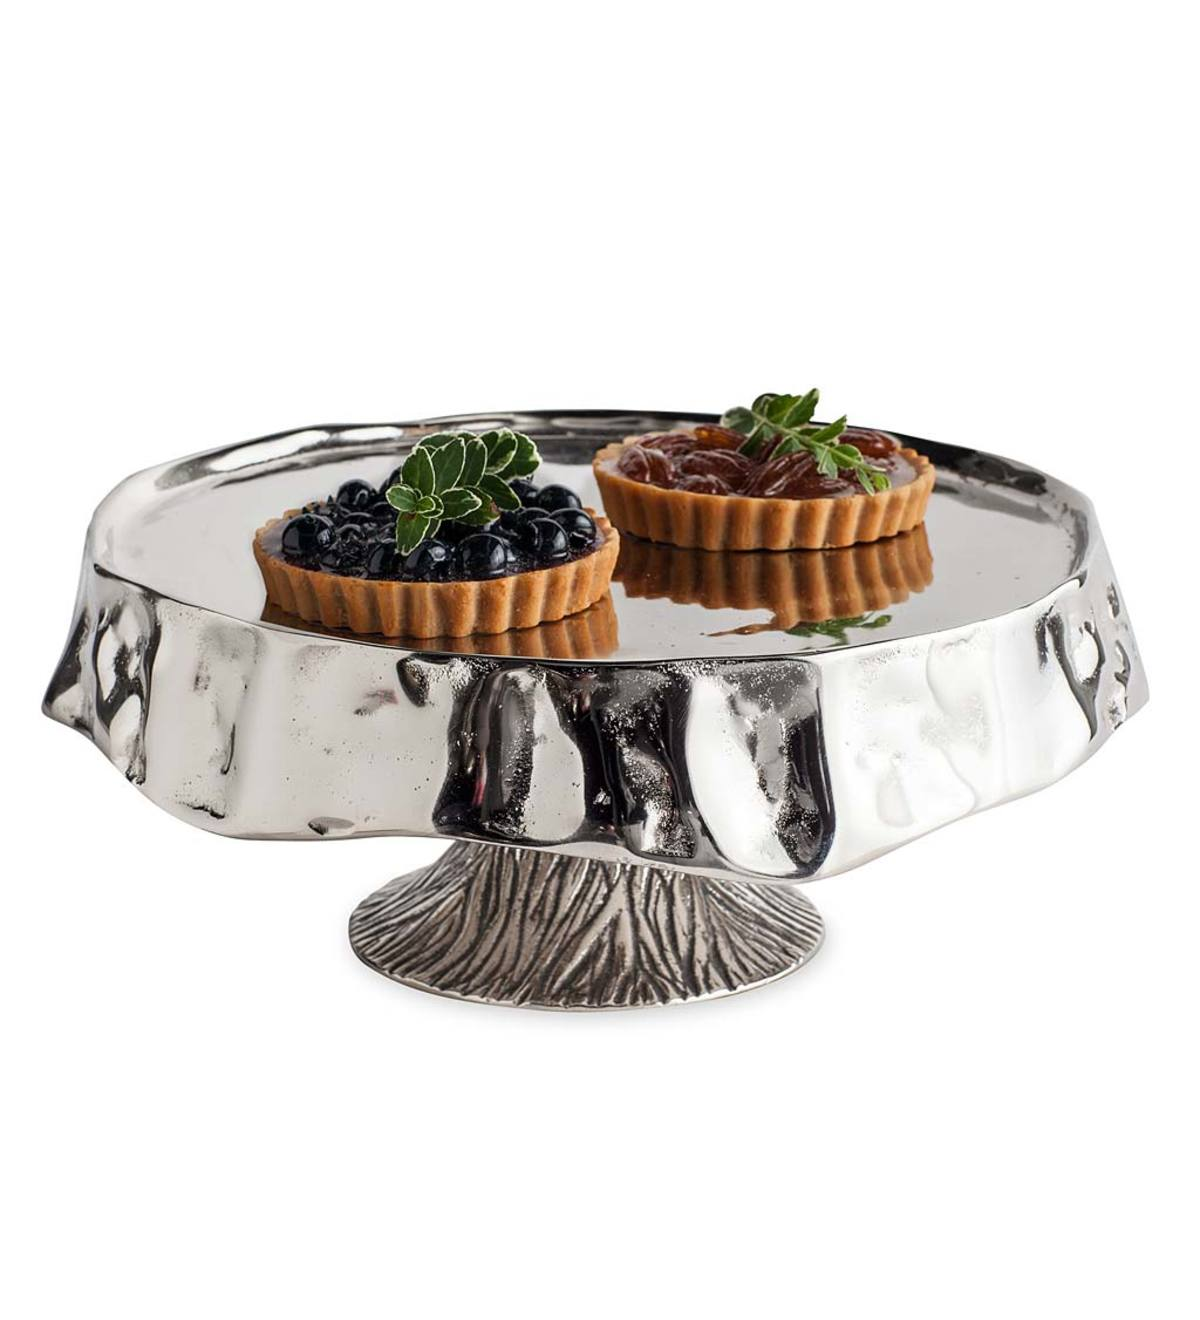 Cast Aluminum Pedestal Serving Tray